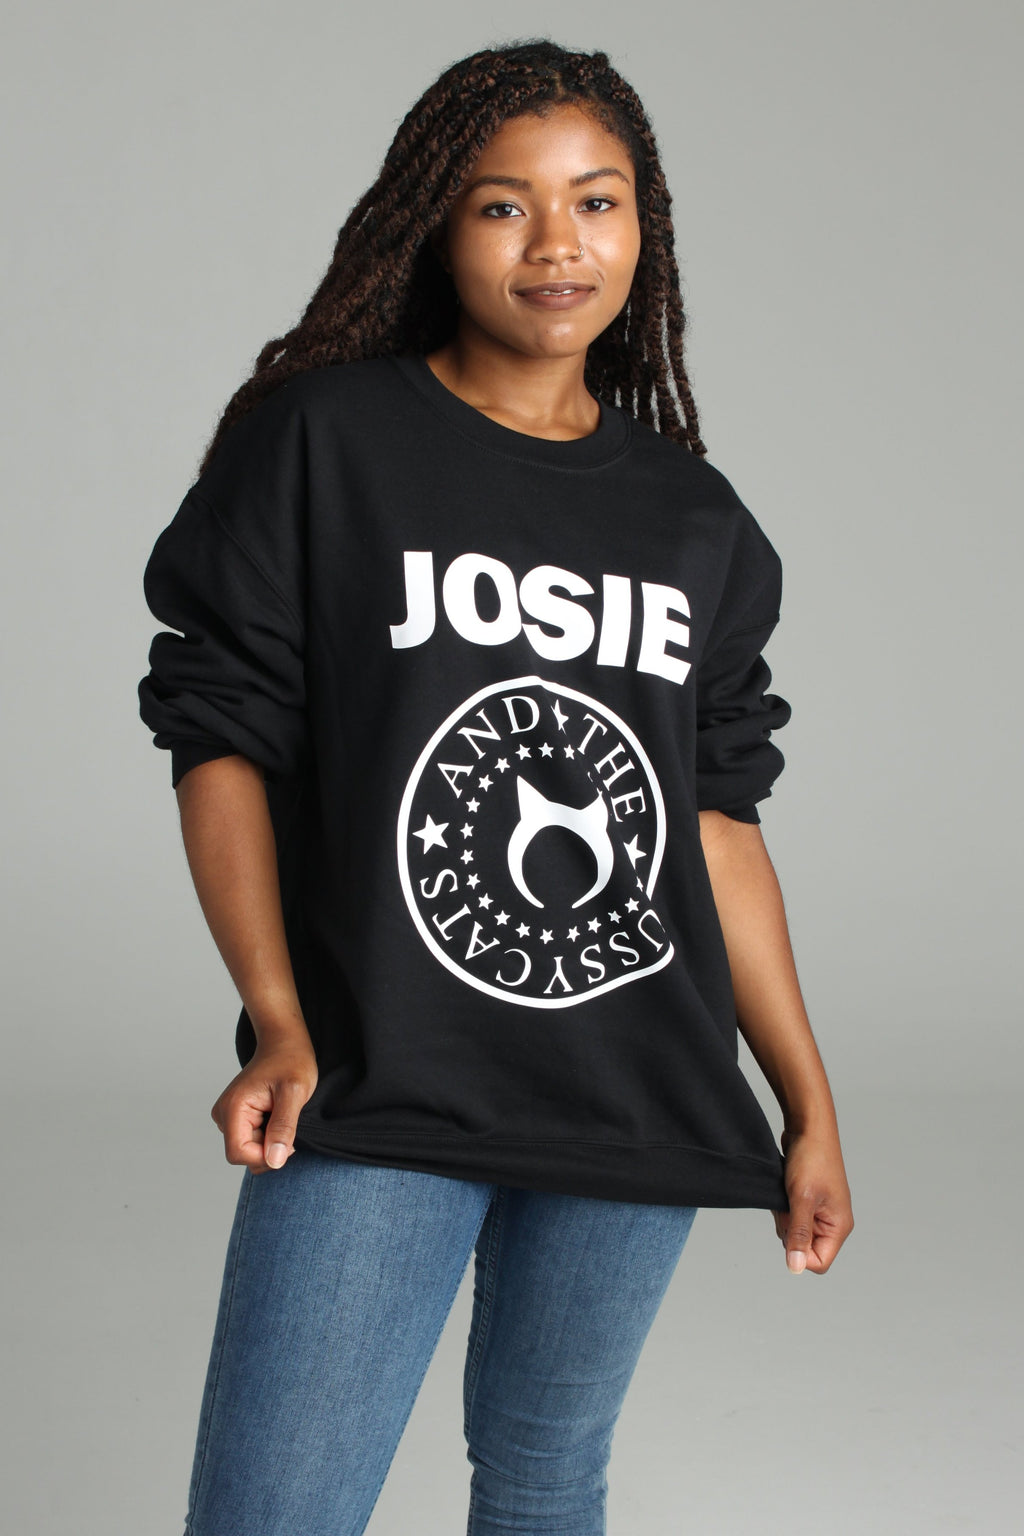 Josie And The Pussycats Sweatshirt